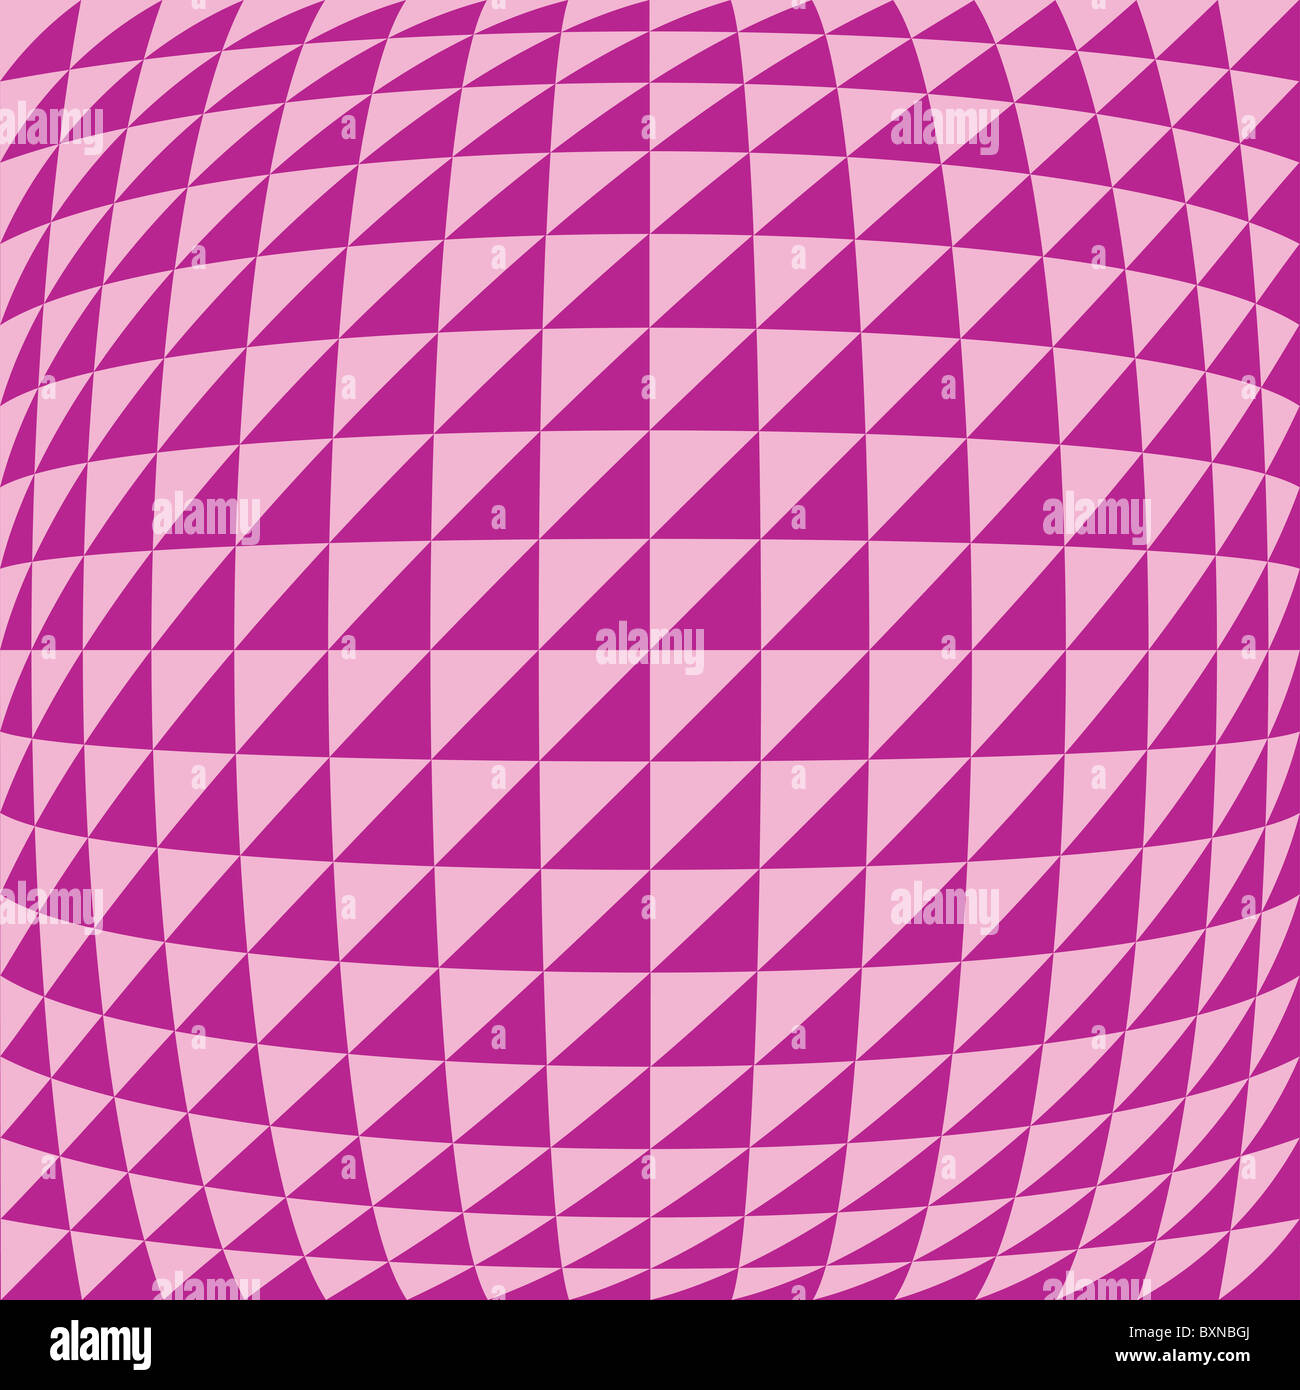 Geometrical abstratct background - Stock Image